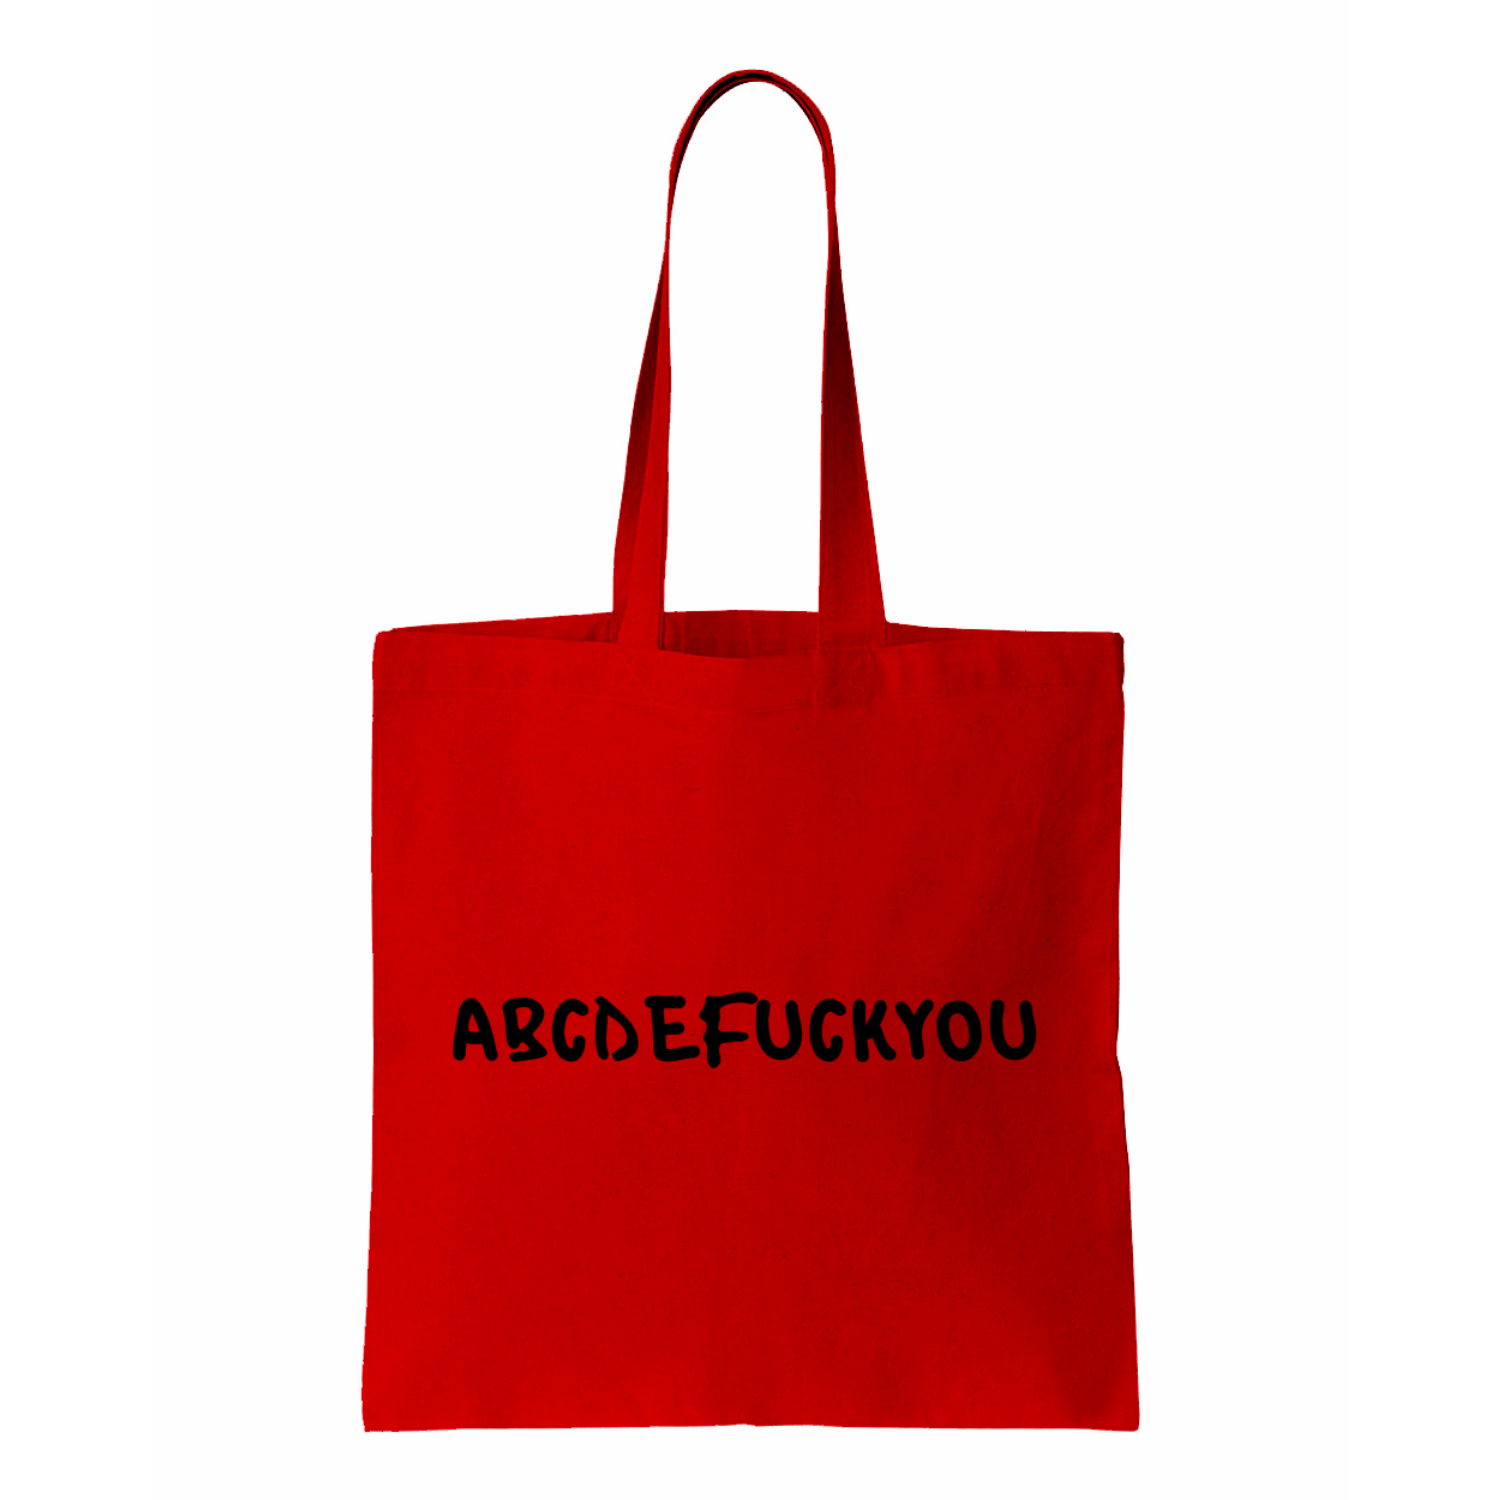 Heavyweight Black Cotton Canvas Carry All Tote Bag  You Are What You Create Freerange Baby  Re-usable Grocery Bag  Avocado Embroidery